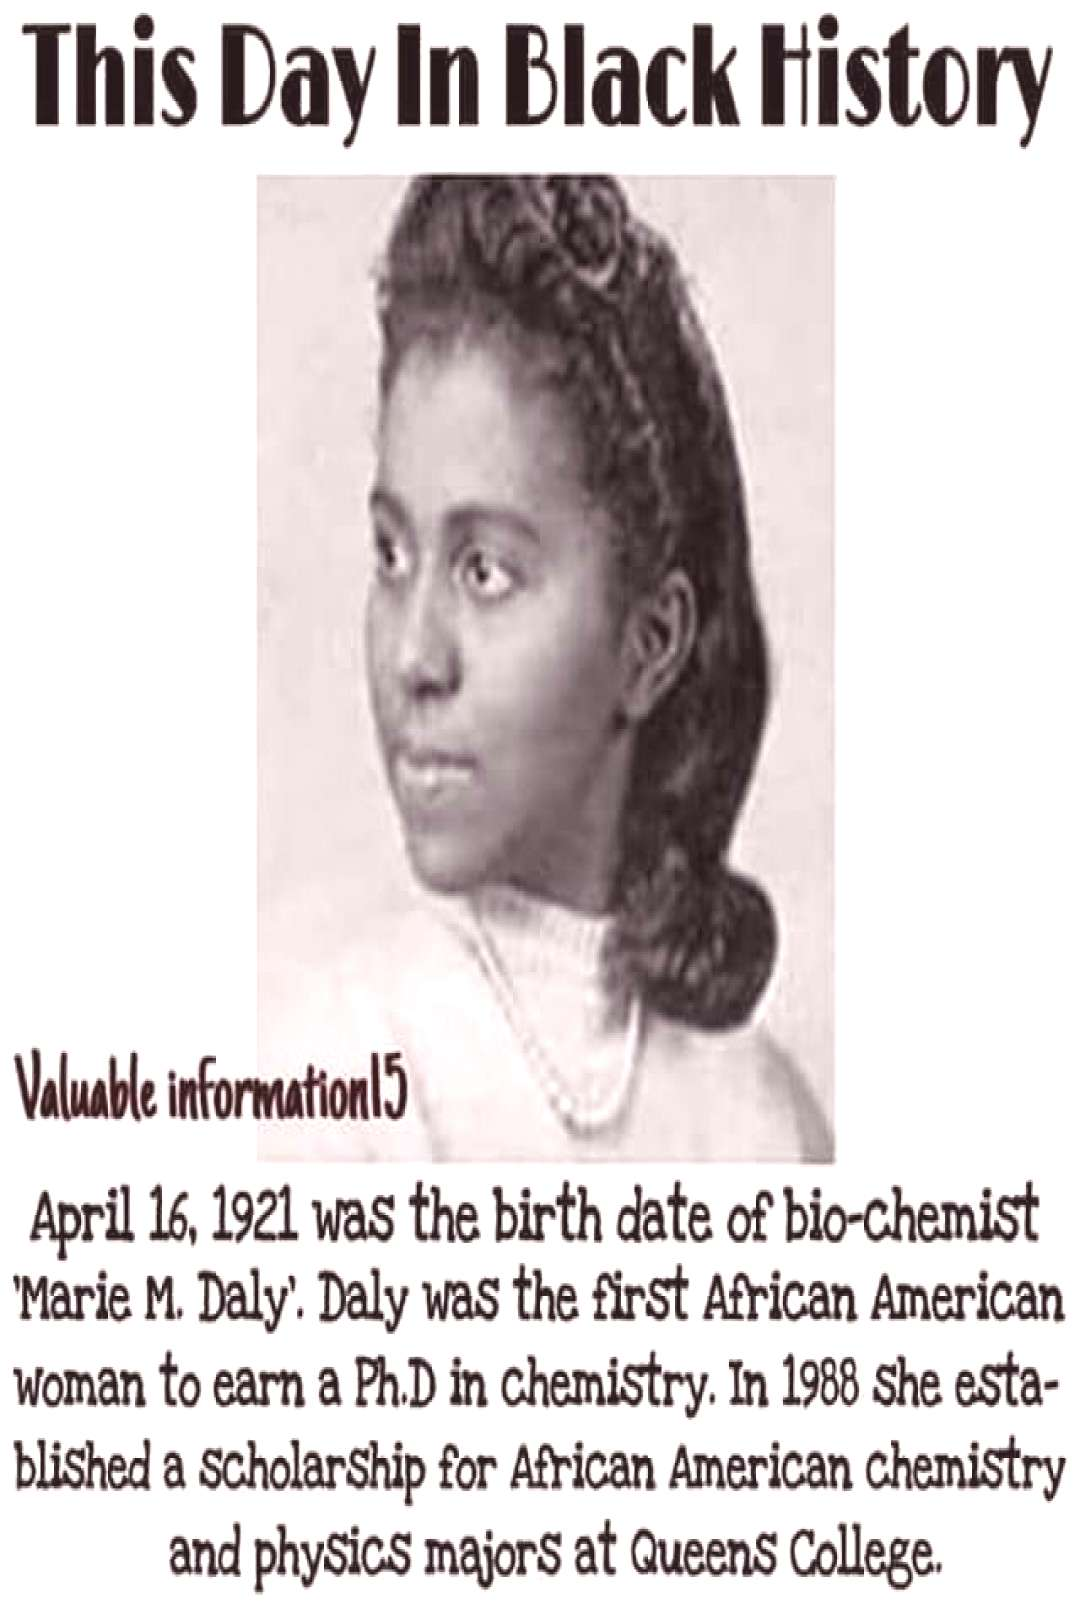 Image may contain 1 person, text that says This Day In Black History Valuable informationl5 April